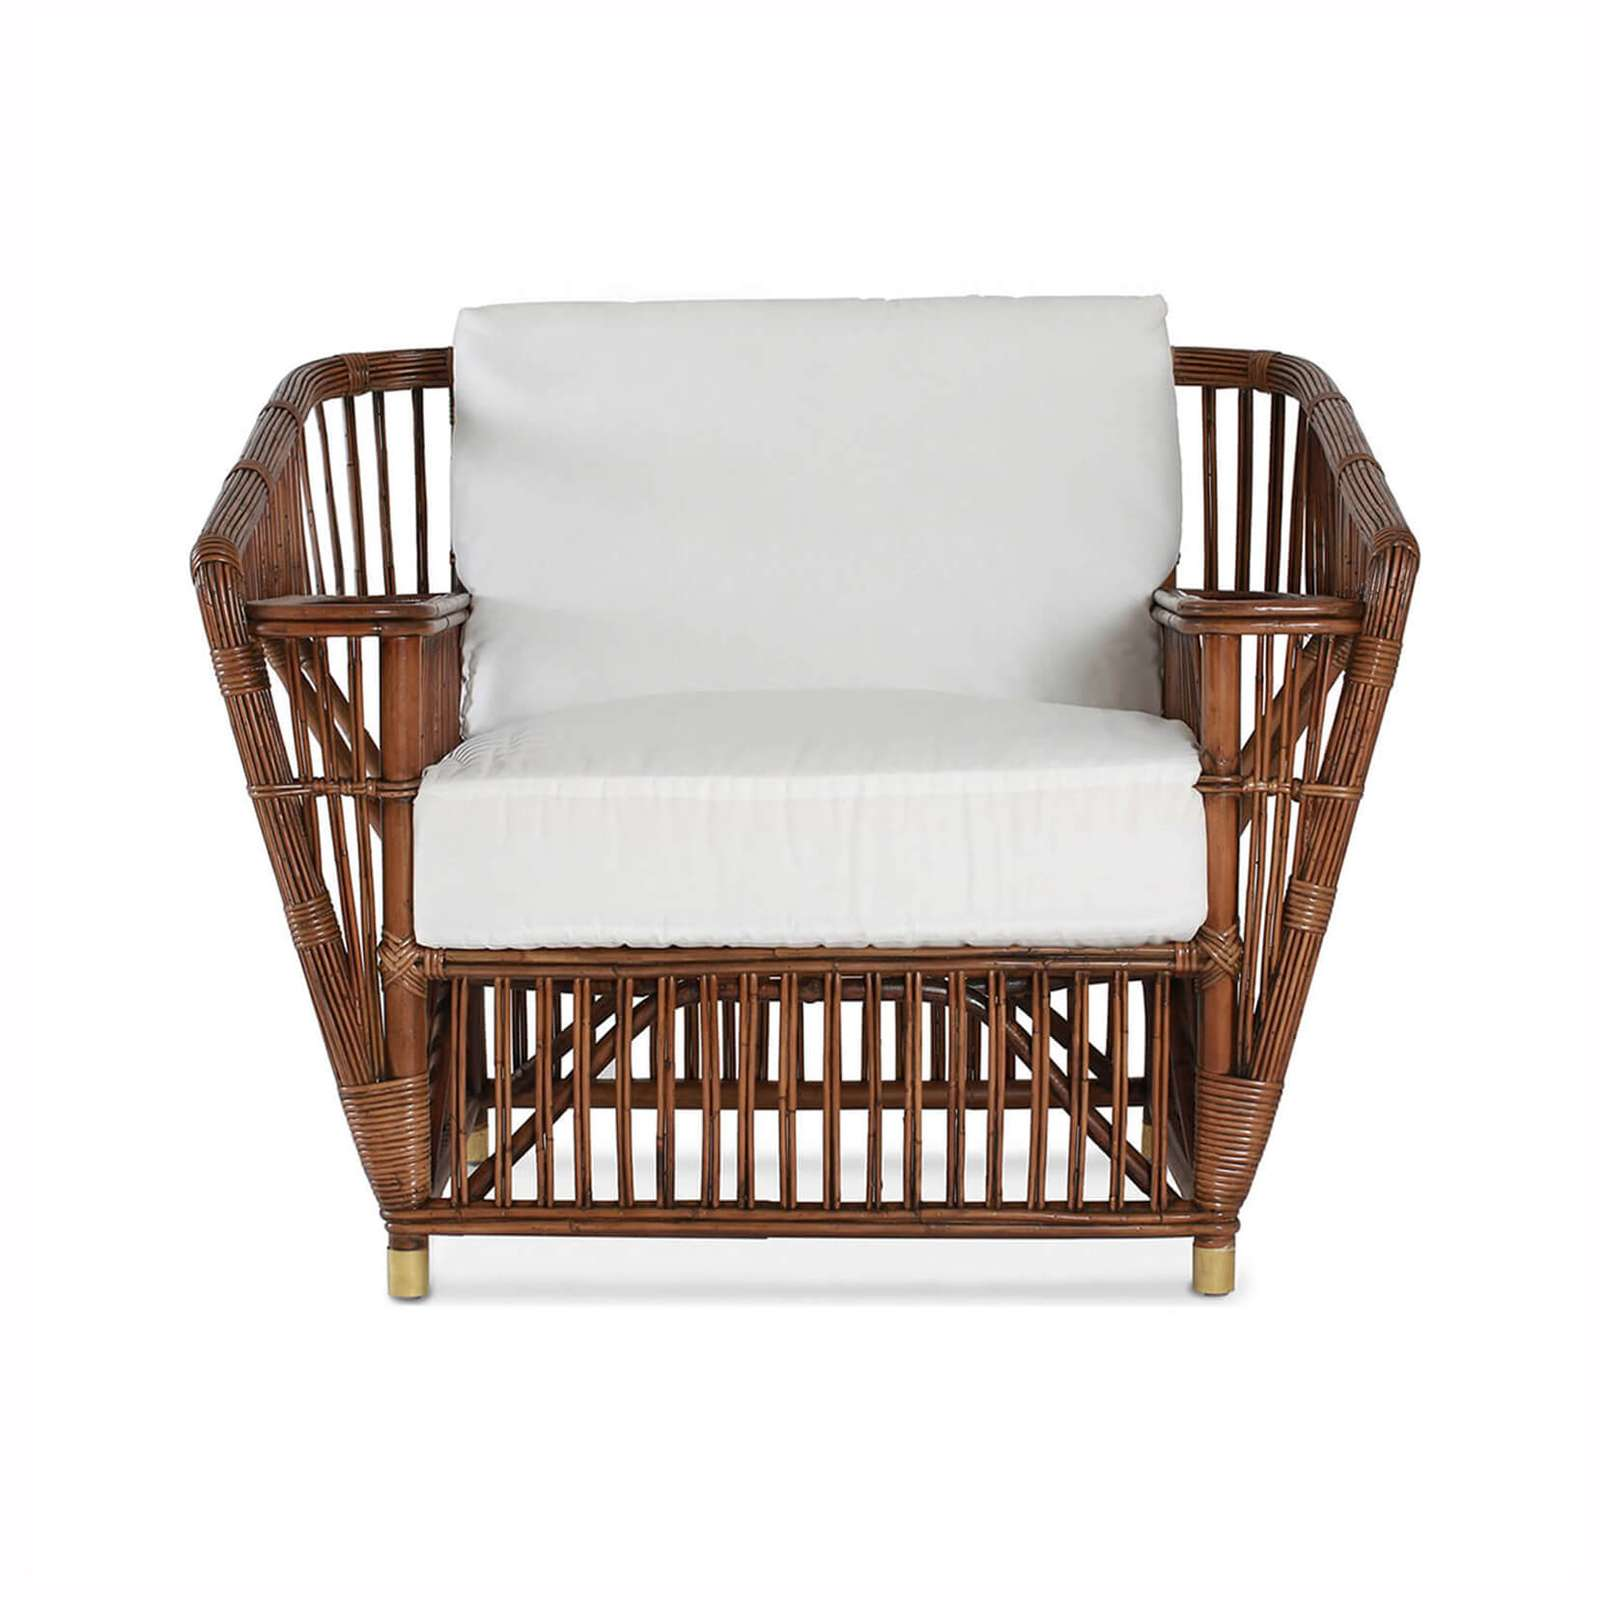 PARROT CAY CLUB CHAIR 03 - STUART MEMBERY HOME COLLECTION